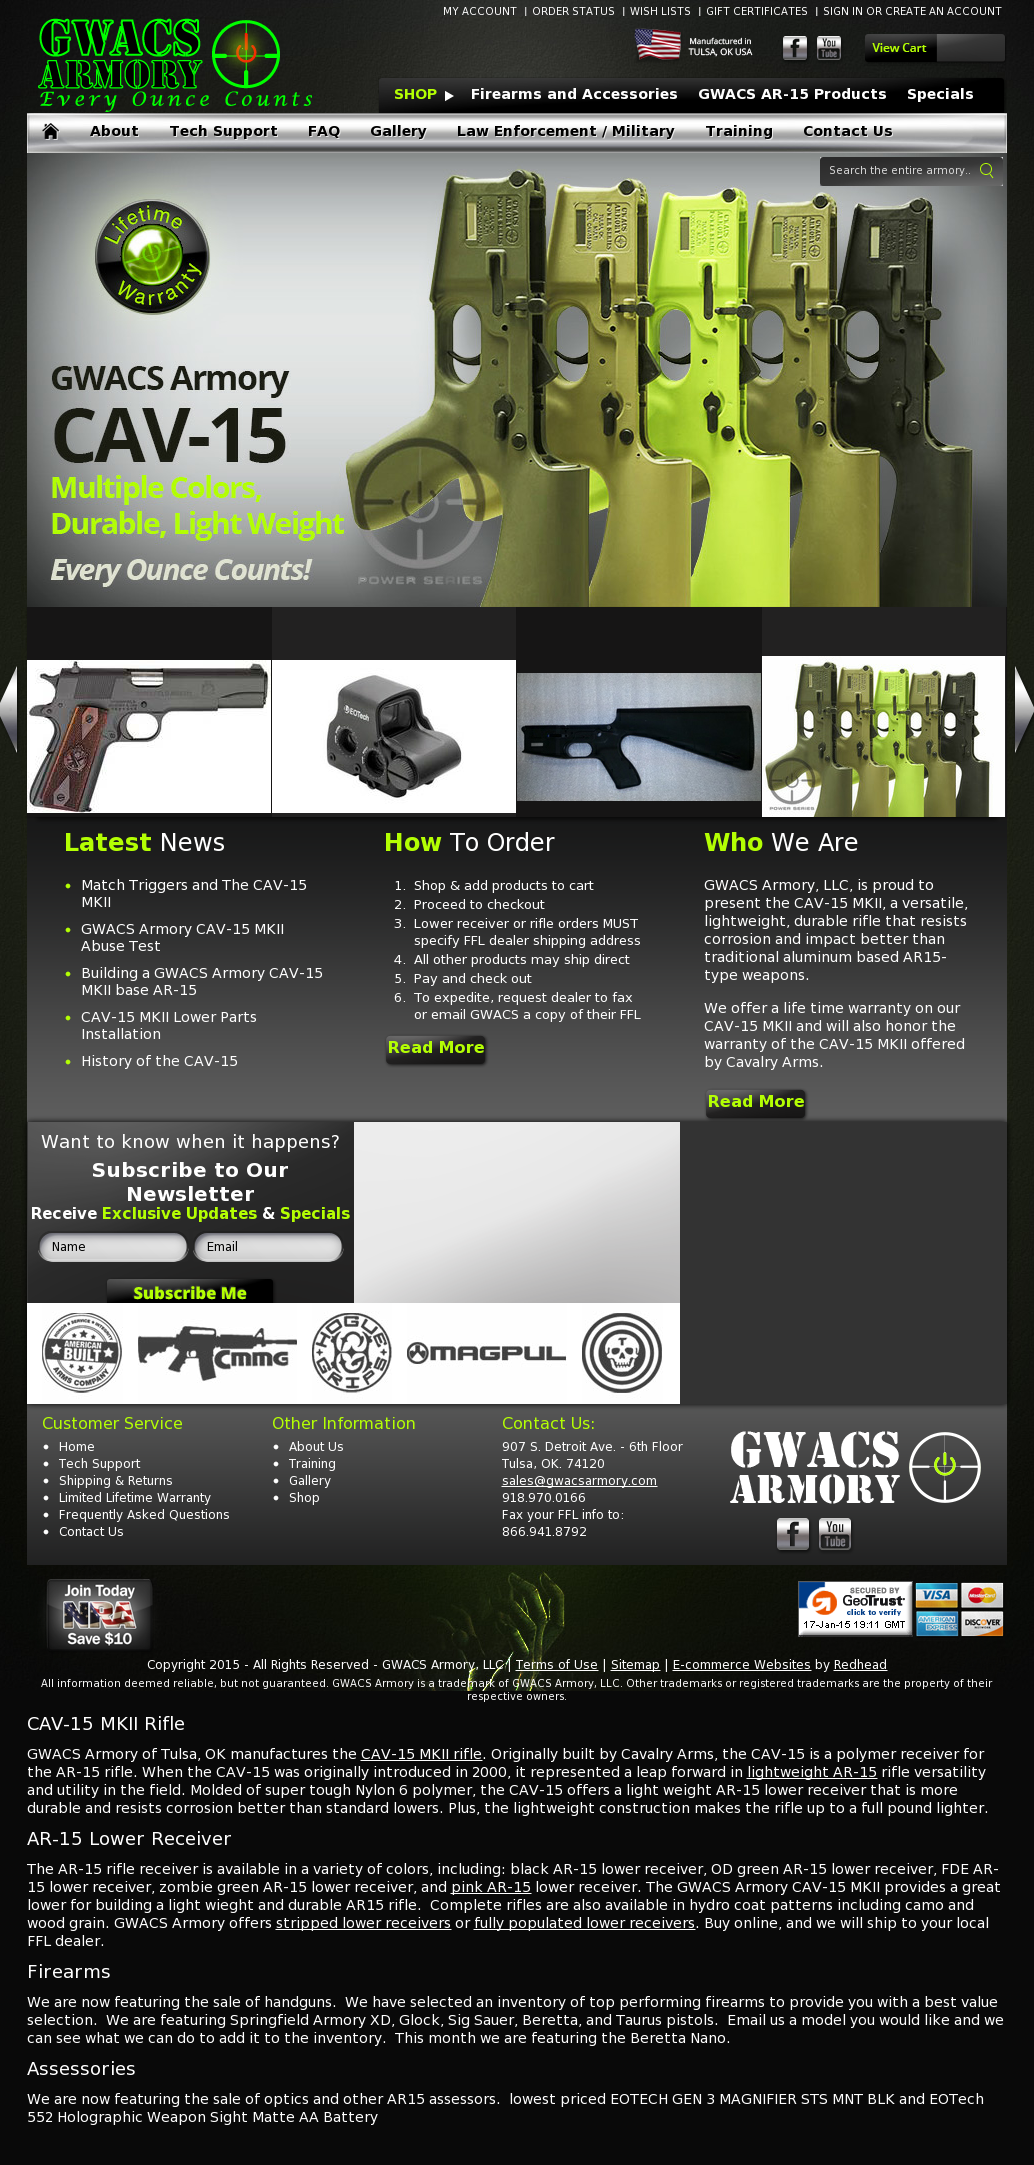 Gwacs Armory Competitors, Revenue and Employees - Owler